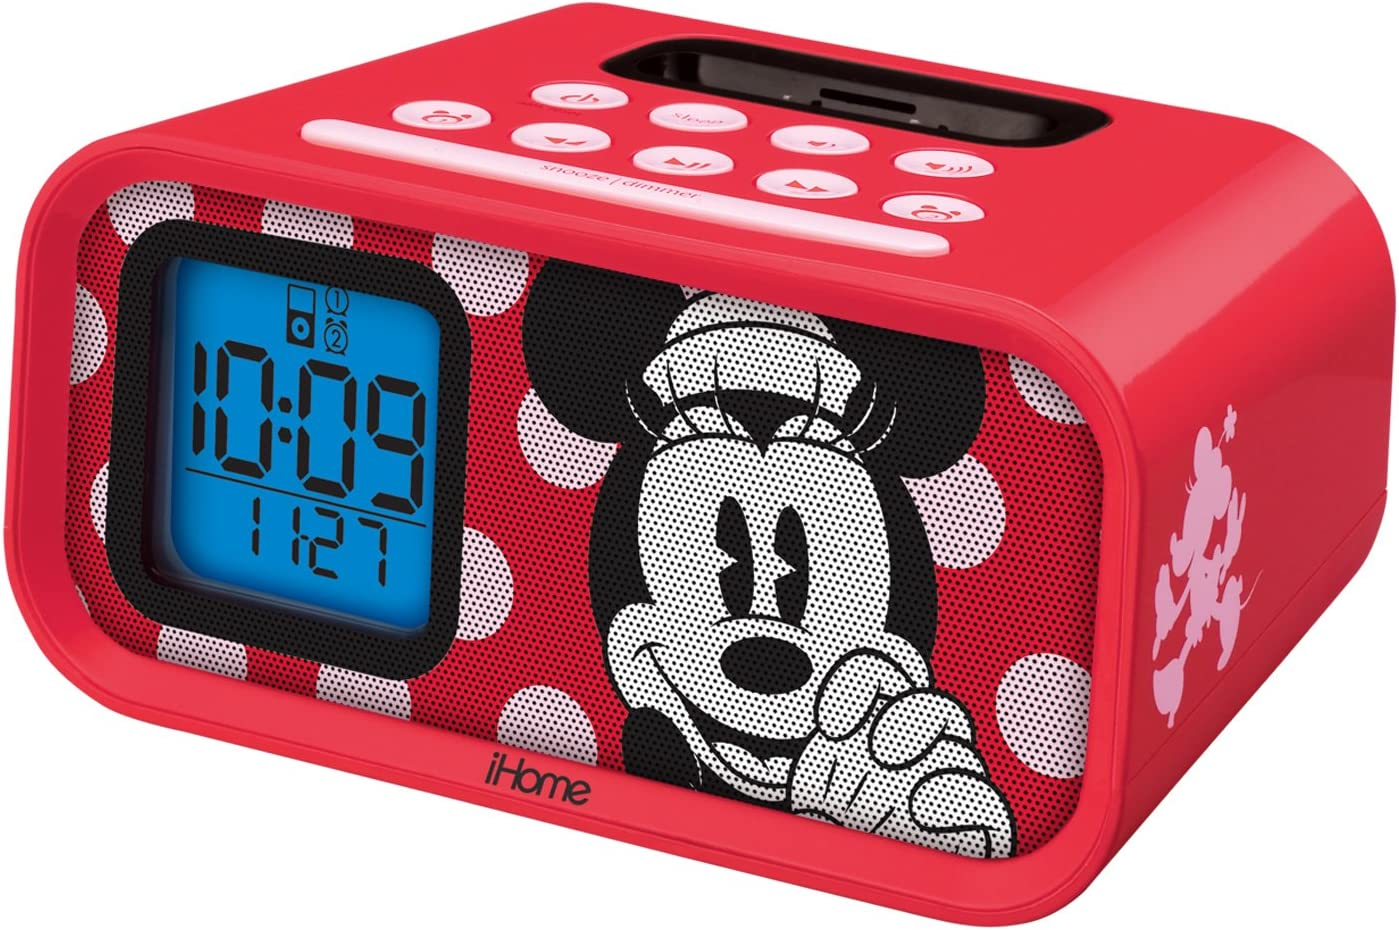 Disney iHome Minnie Mouse Dual Alarm Clock Speaker System With Ipod Dock